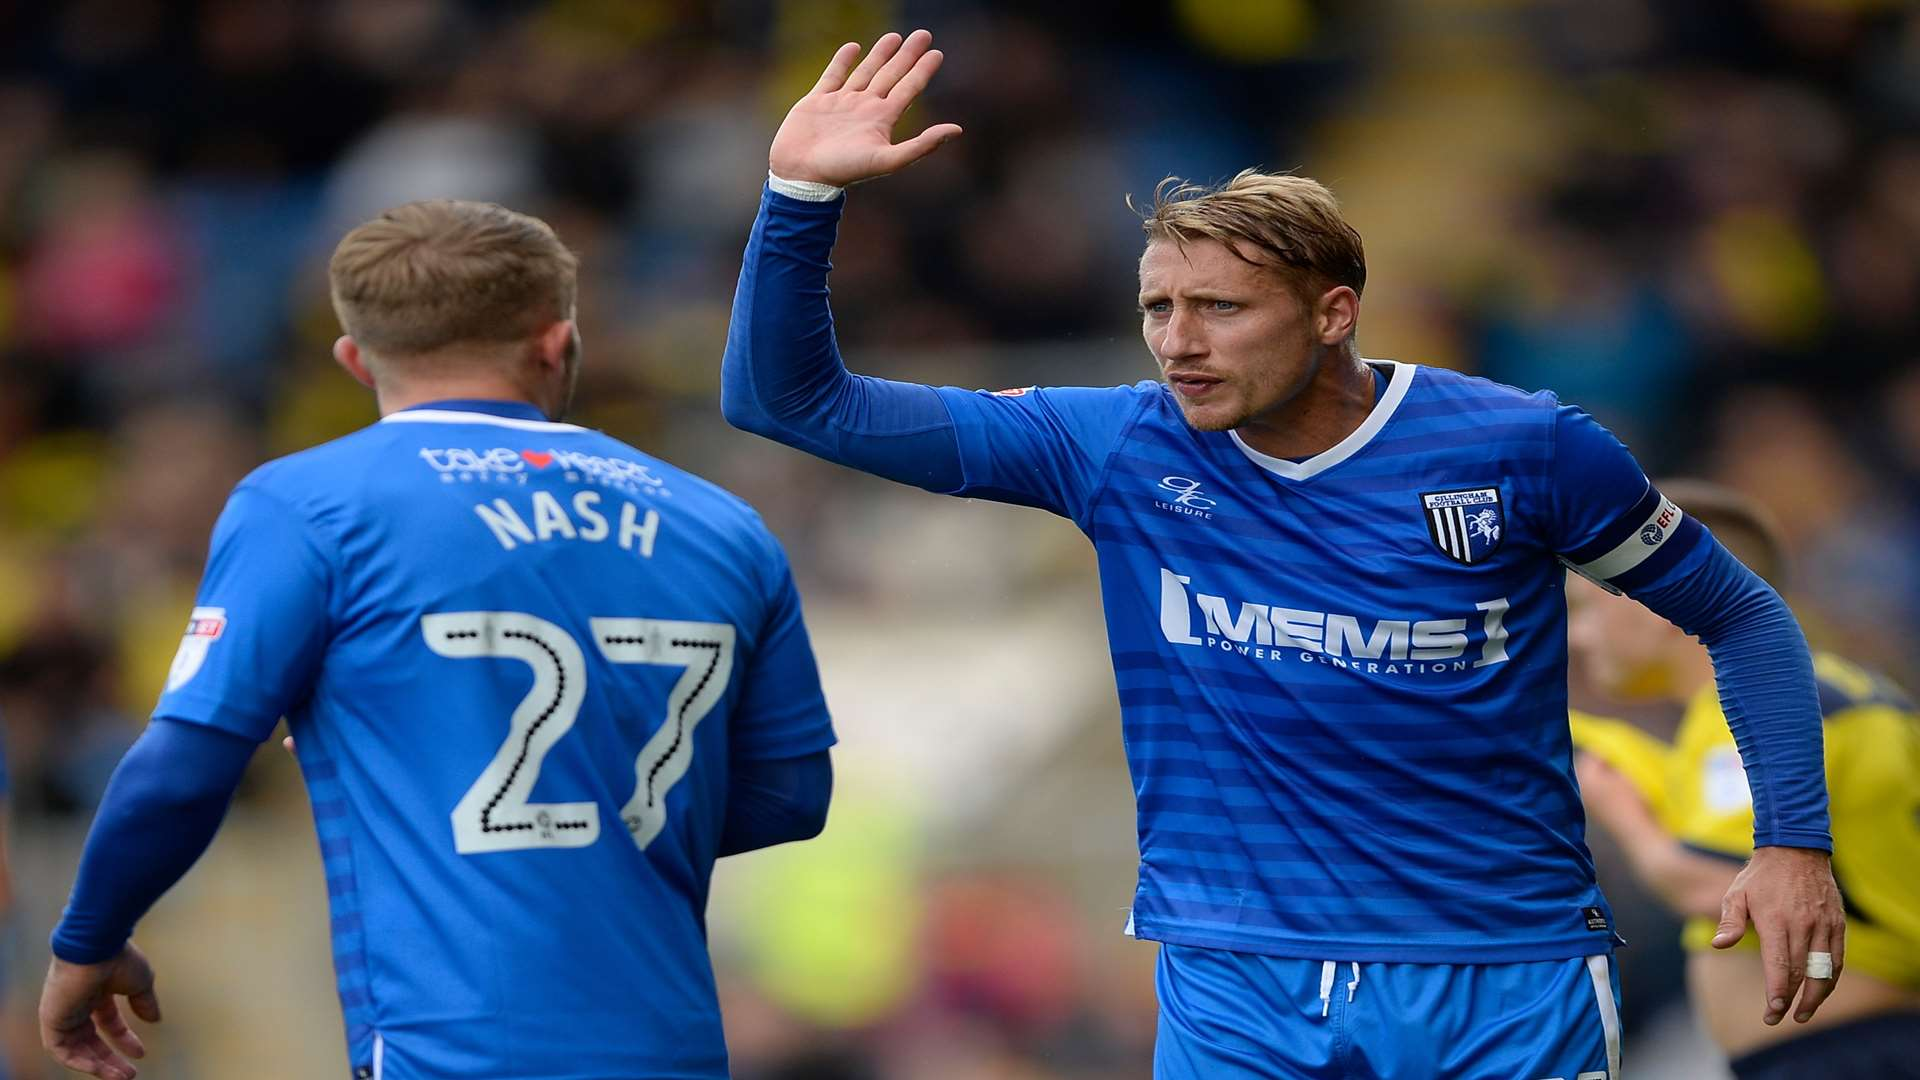 Gillingham captain Lee Martin has a difference of opinion with Liam Nash. Picture: Ady Kerry